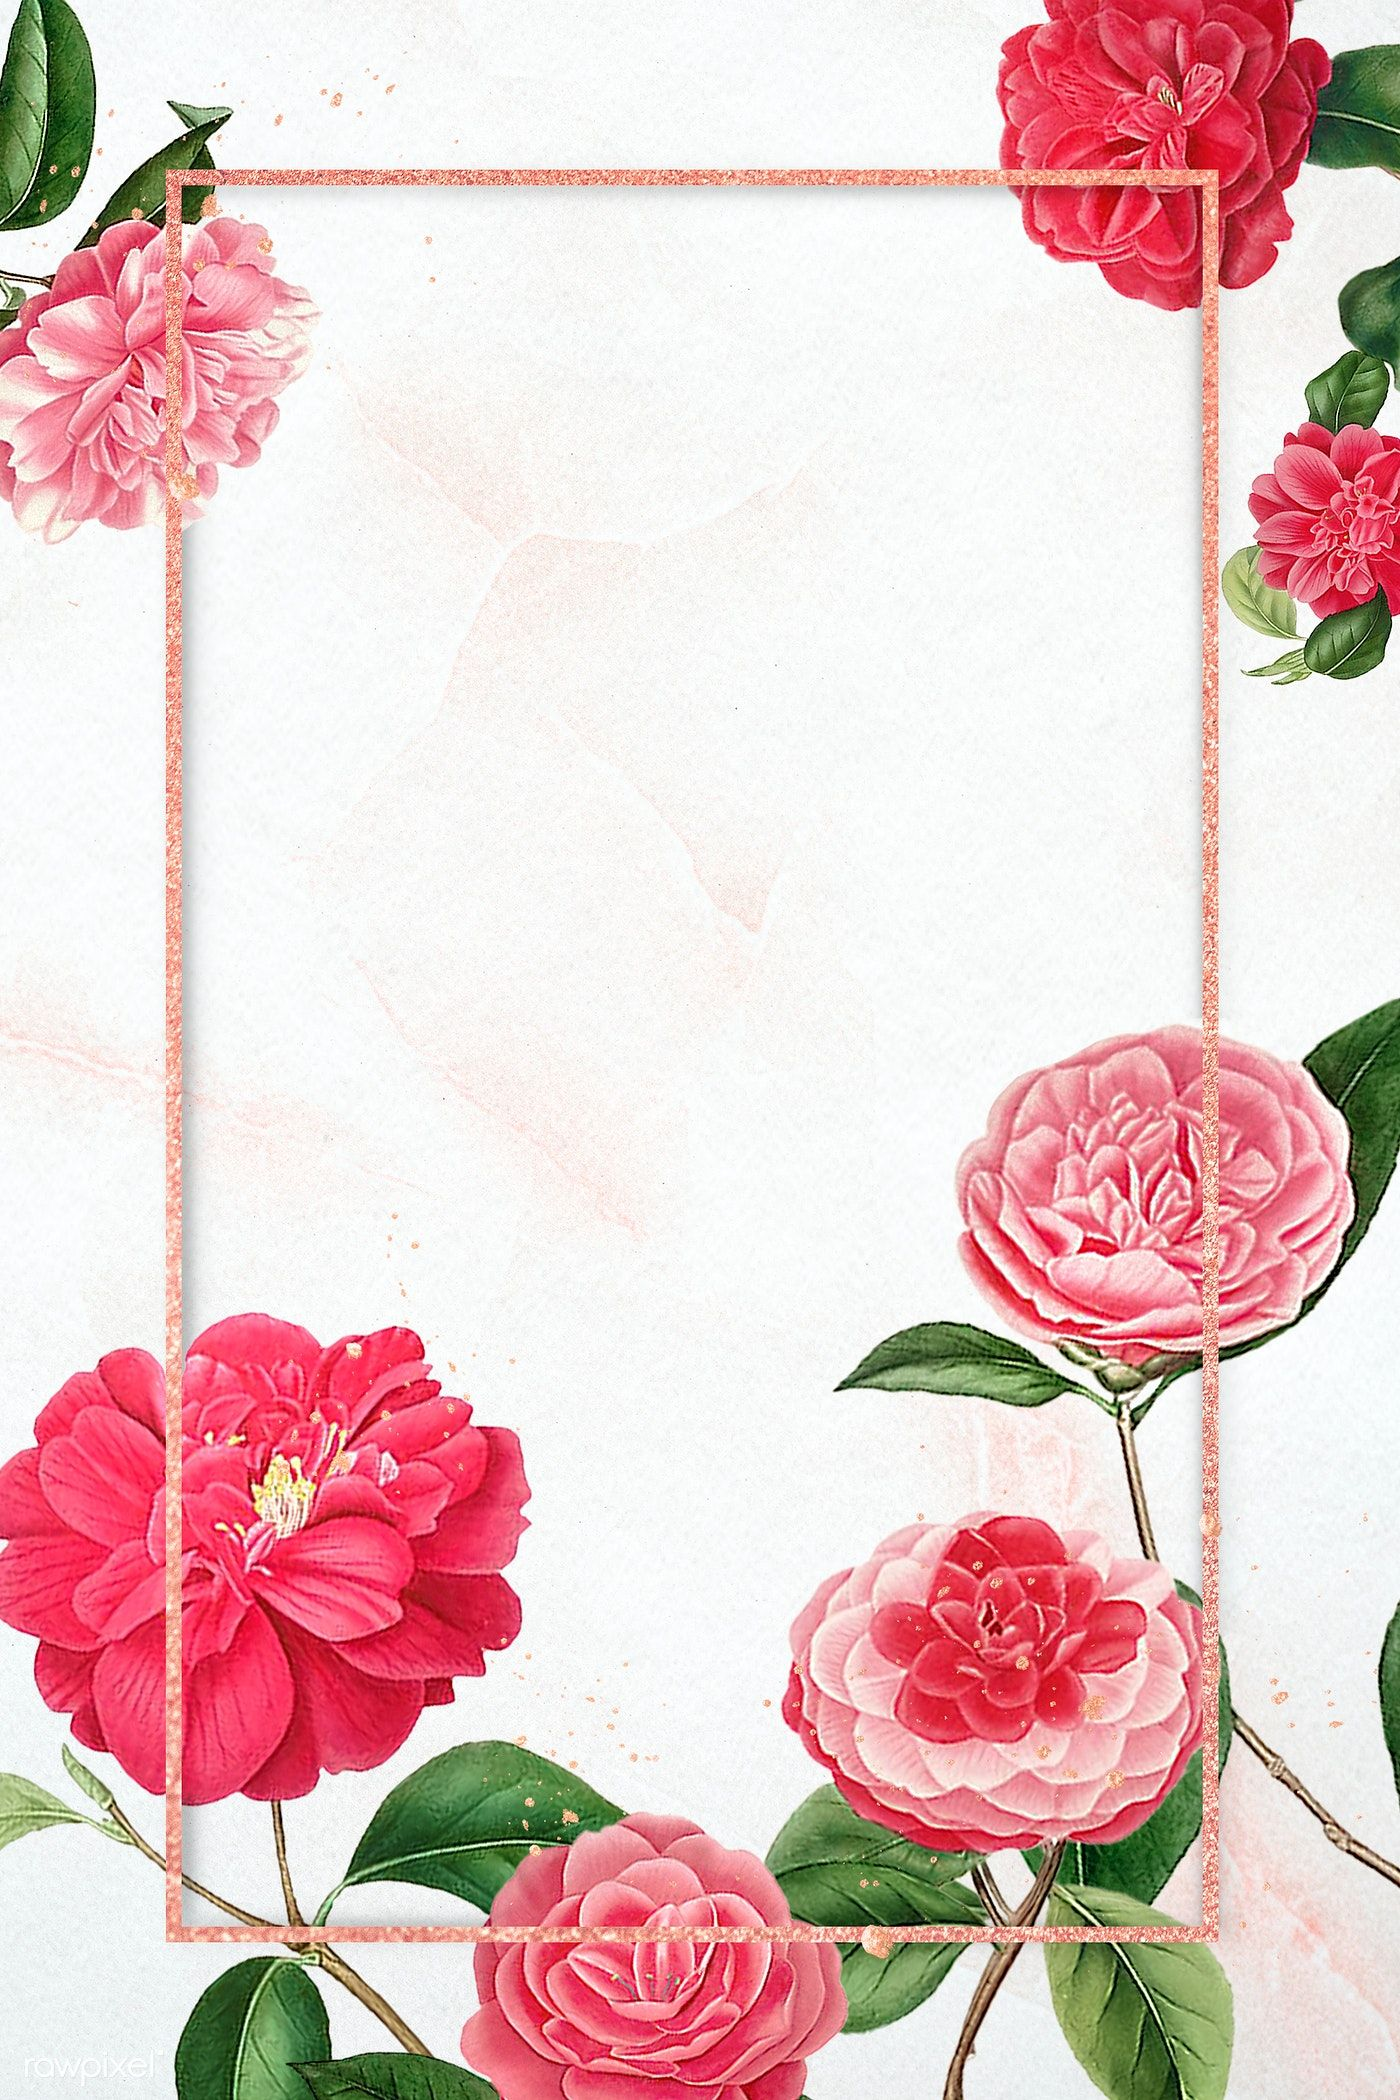 Download Premium Psd Of Red And Pink Camellia Flower Patterned Blank Frame พ นหล ง